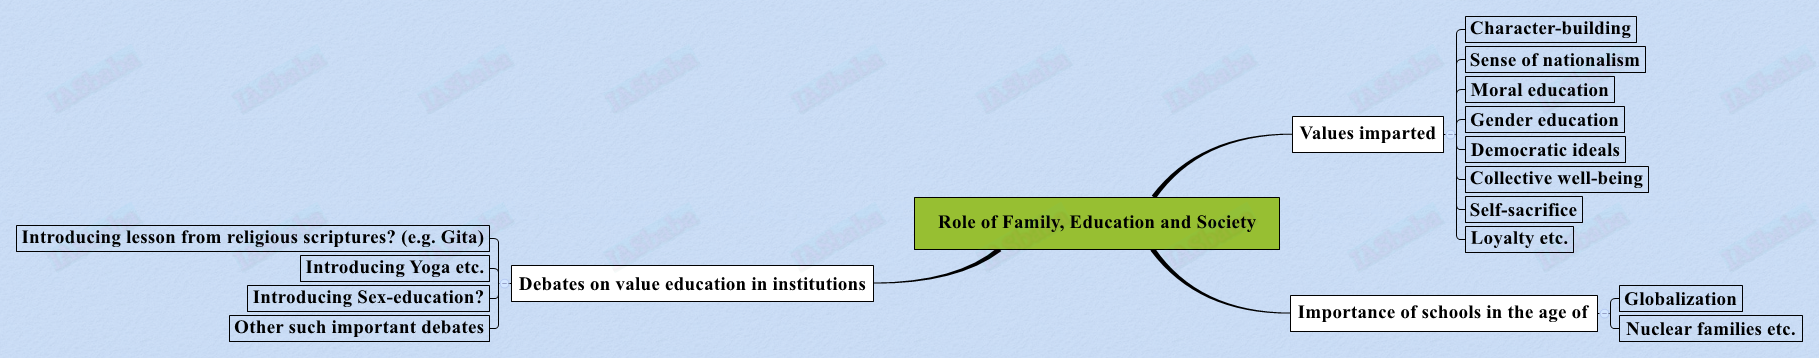 Role of Family, Education and Society